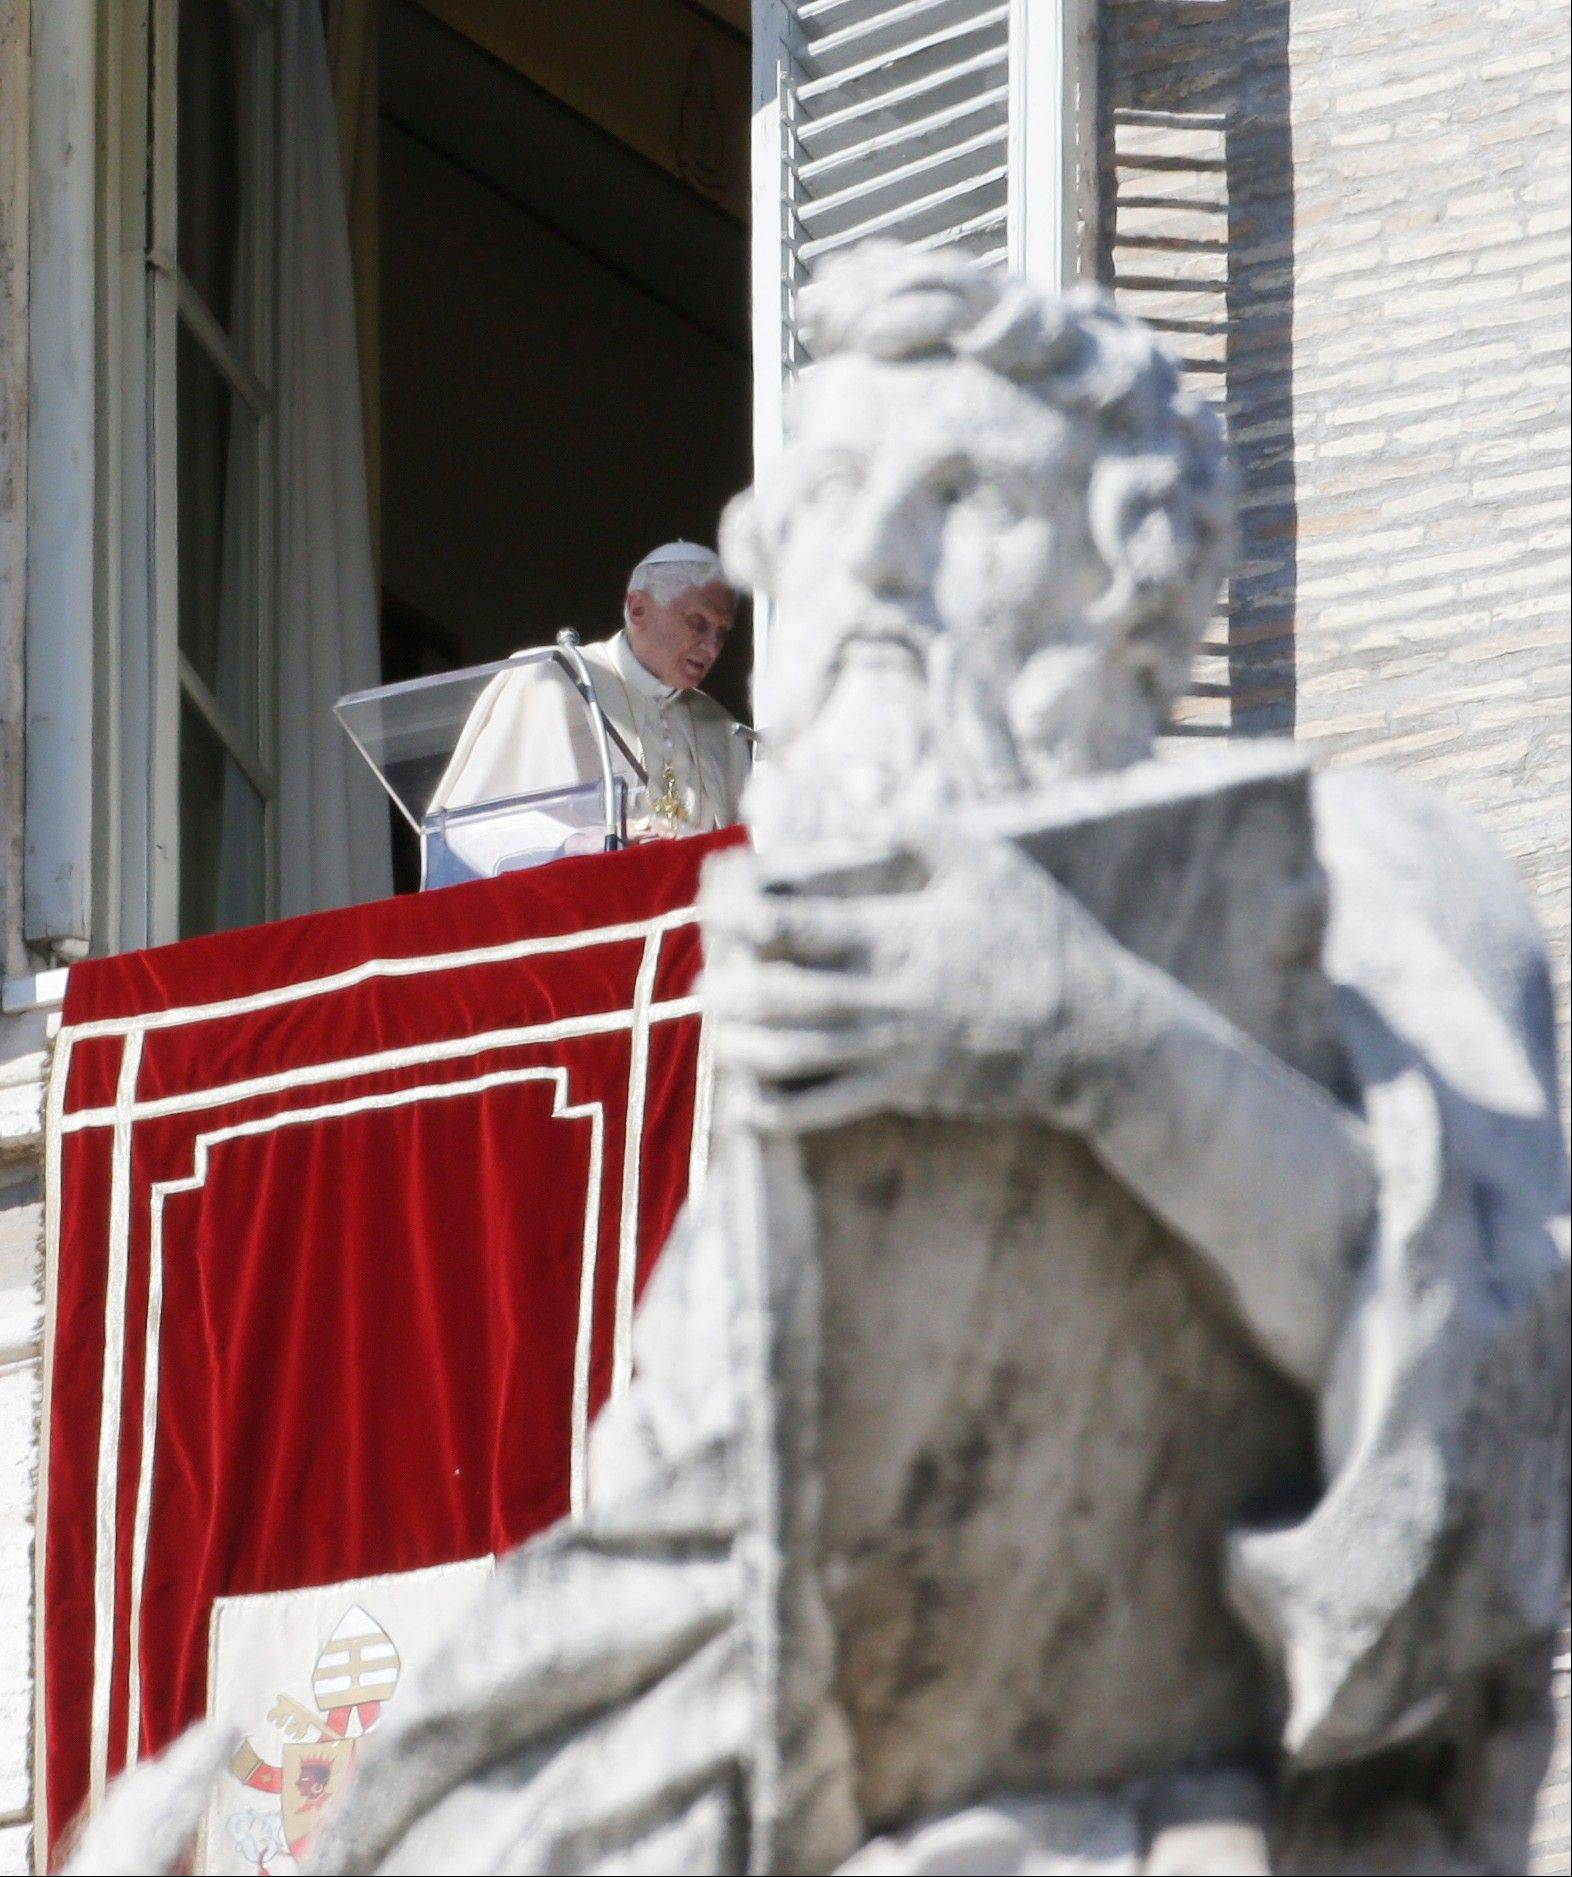 Pope Benedict XVI walks away from his studio window overlooking St. Peter's Square Sunday after delivering his Angelus noon prayer at the Vatican.